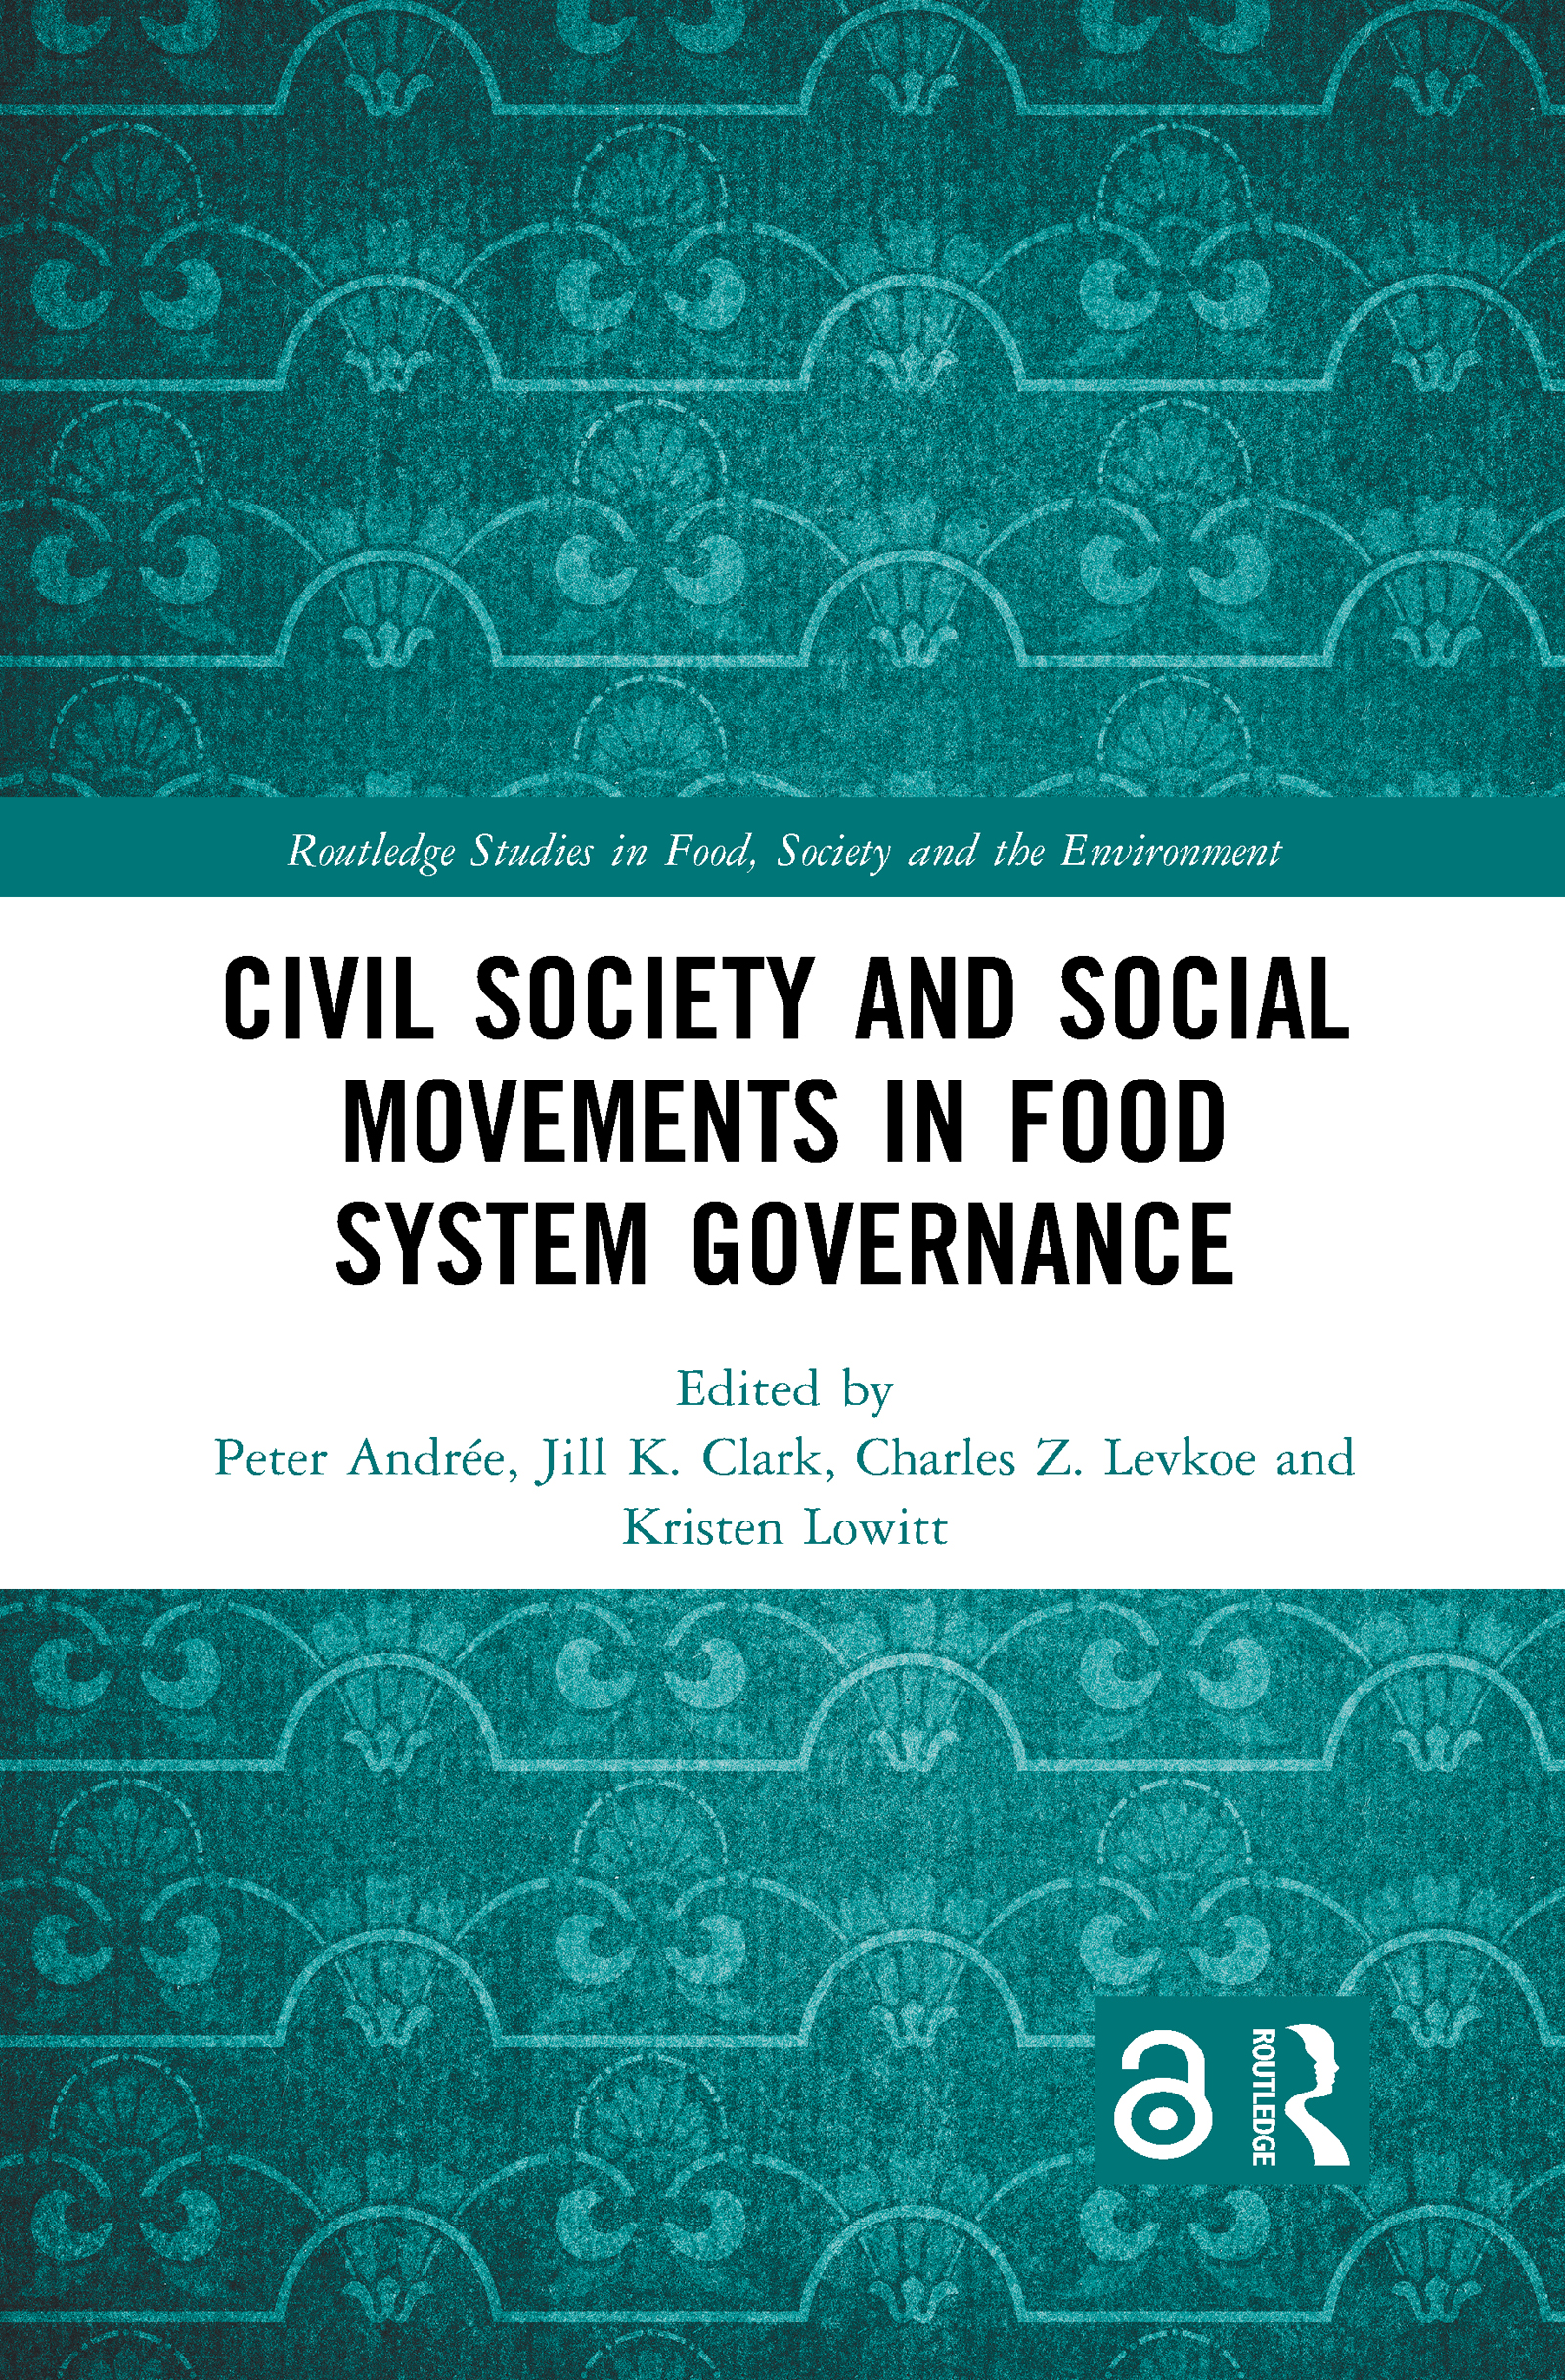 Civil Society and Social Movements in Food System Governance (Open Access)